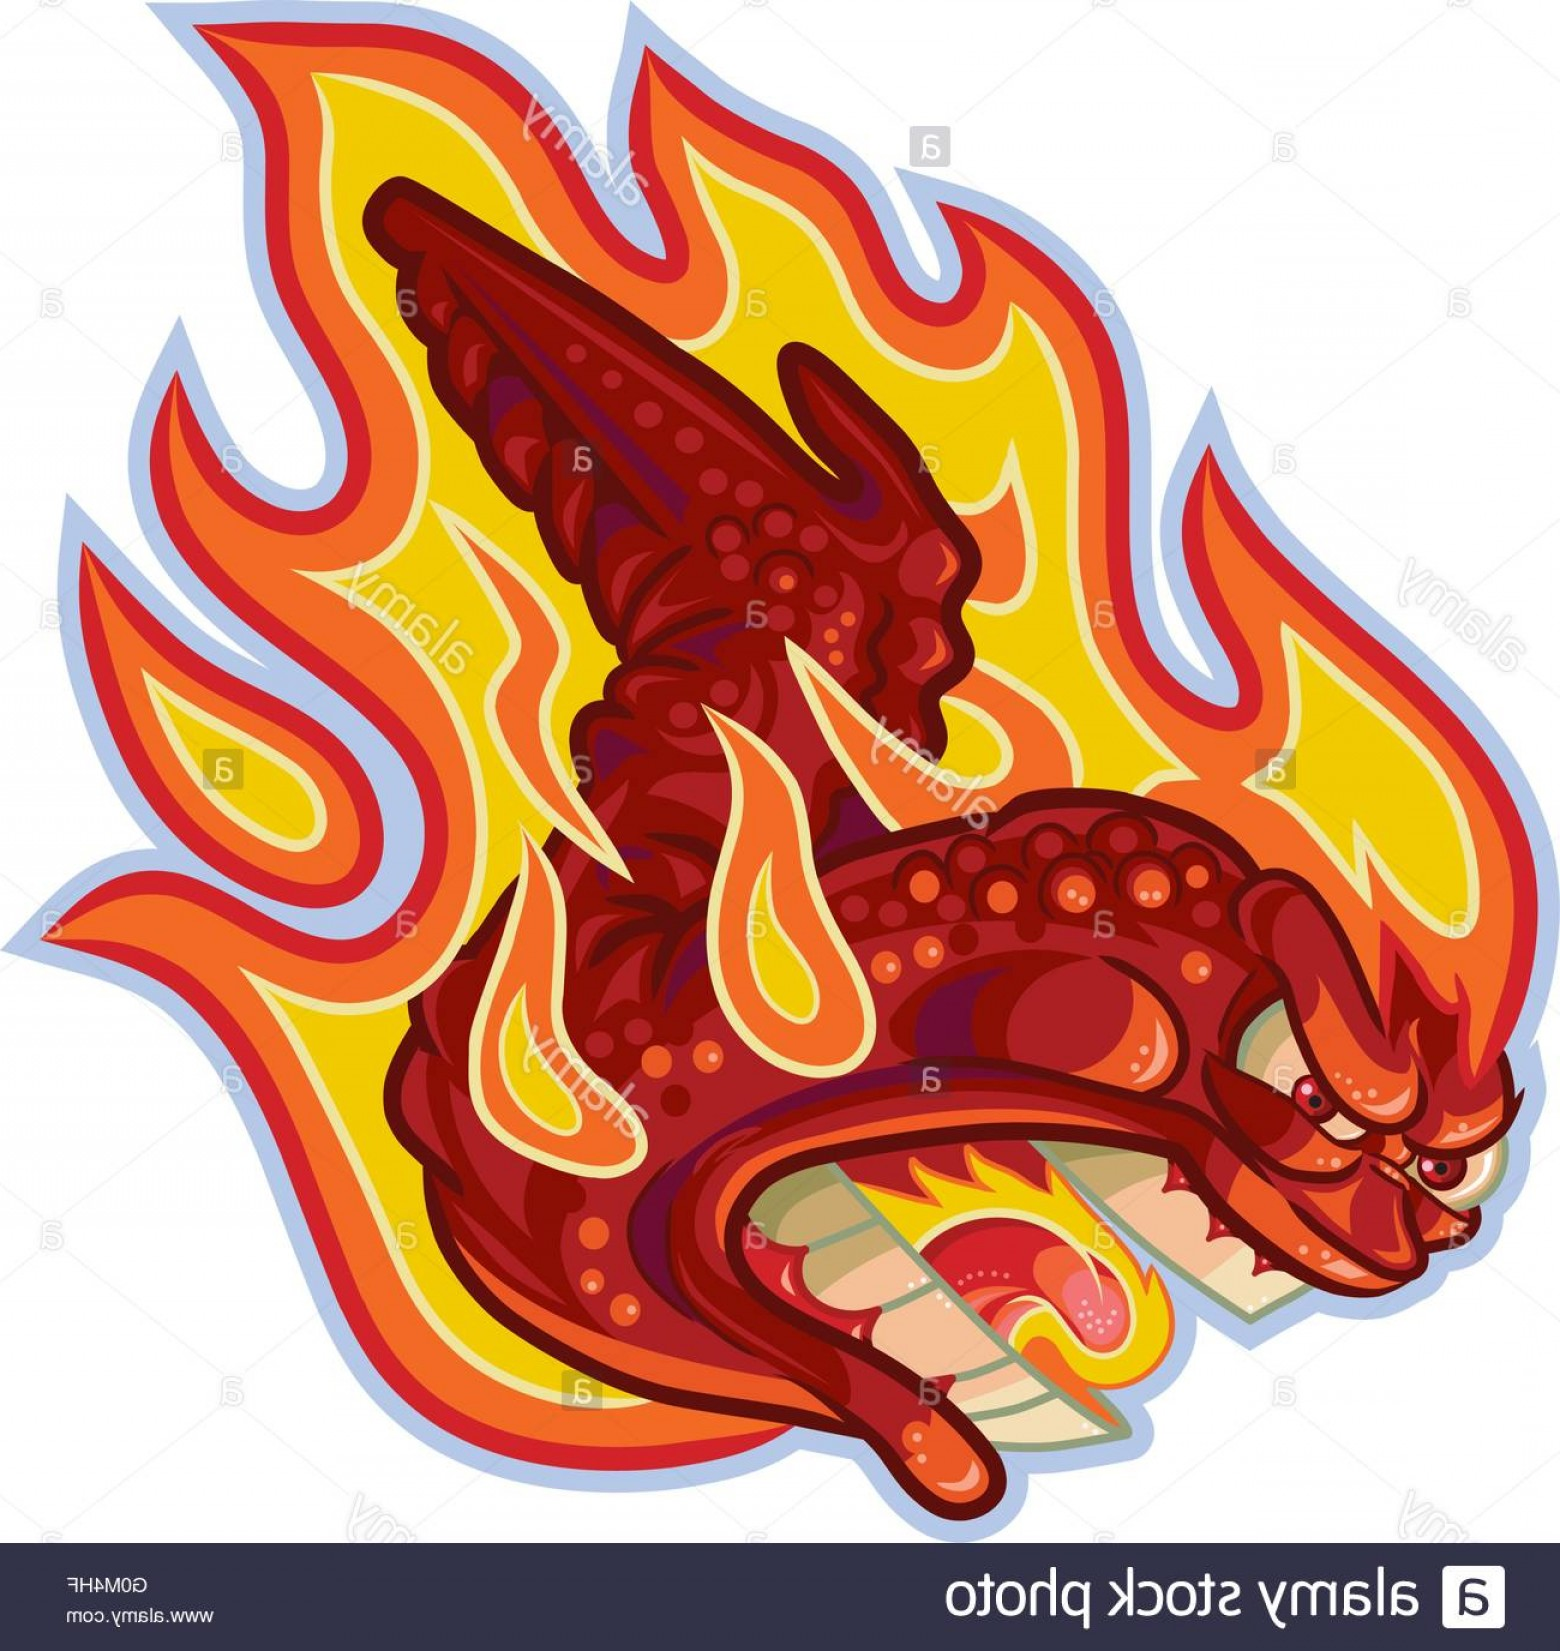 Fire Clip Art Vector: Stock Photo Vector Cartoon Clip Art Illustration Of An Angry Buffalo Or Hot Chicken